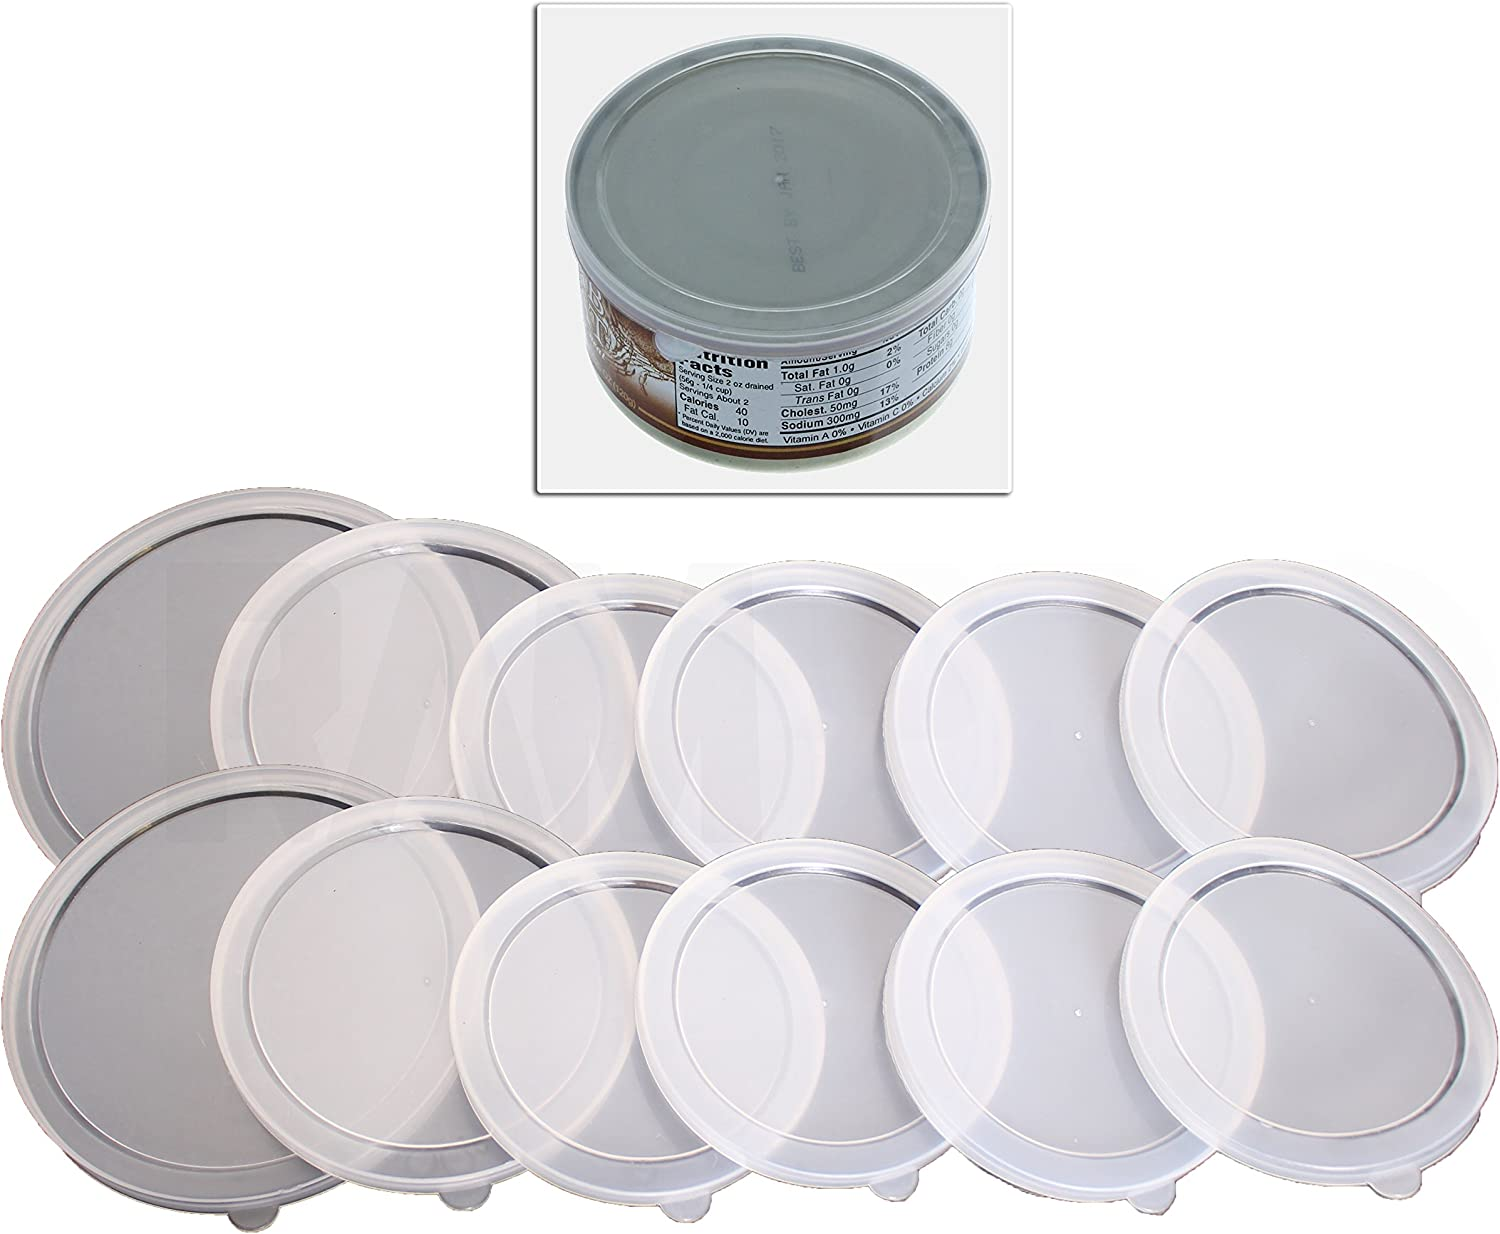 12 Piece Assorted Size 2 Large 2 Medium 8 small Plastic Can Covers Lids For Canned Goods or Pet Dog Cat Food (Save Food Fresh, Tight Seal- 2PK)